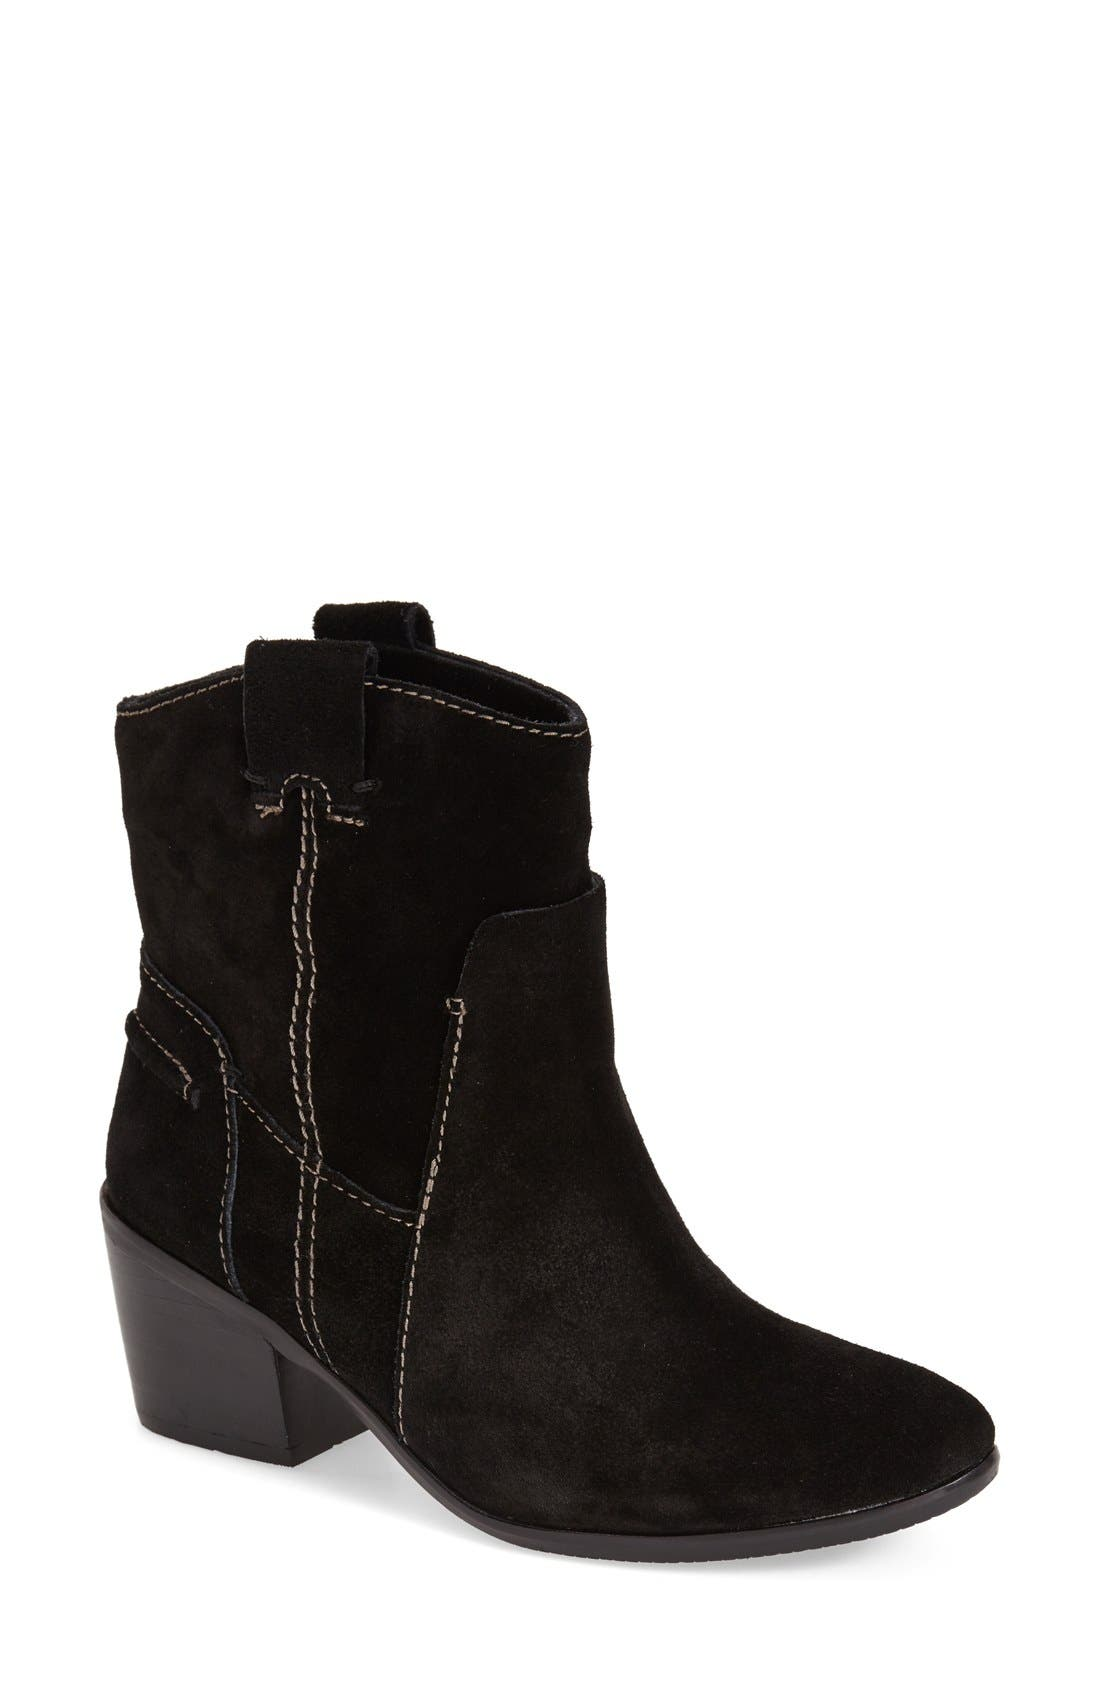 'Maves' Bootie, Main, color, 001